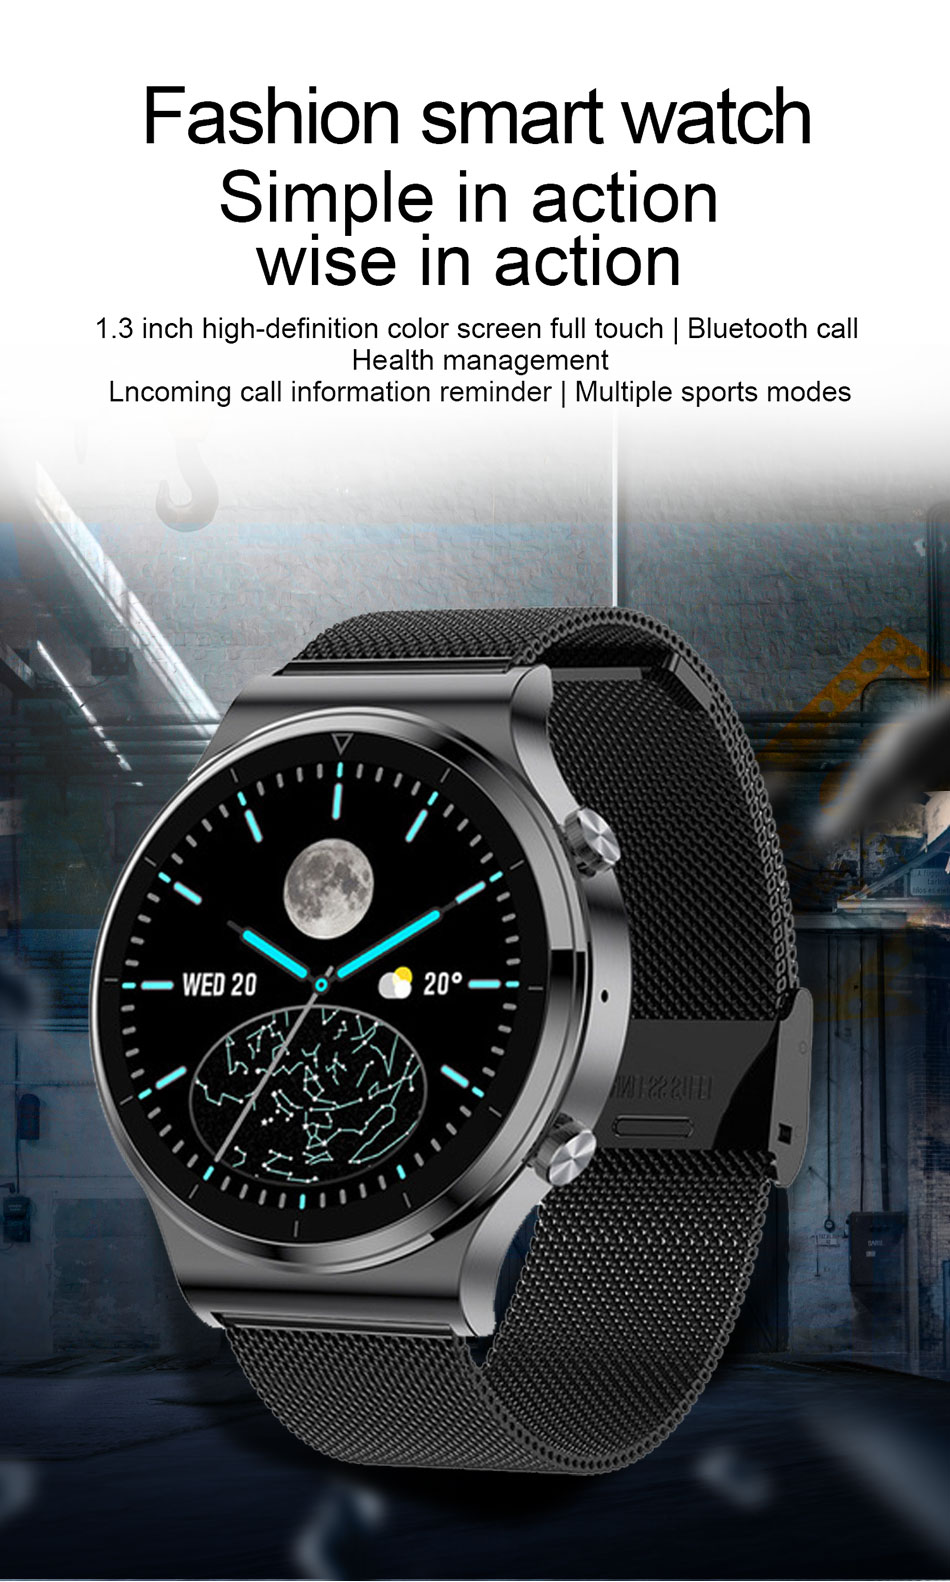 Hb326f06df11a48ffa1926baead7497abu LIGE New Smart watch Men Heart rate Blood pressure Full touch screen sports Fitness watch Bluetooth for Android iOS smart watch